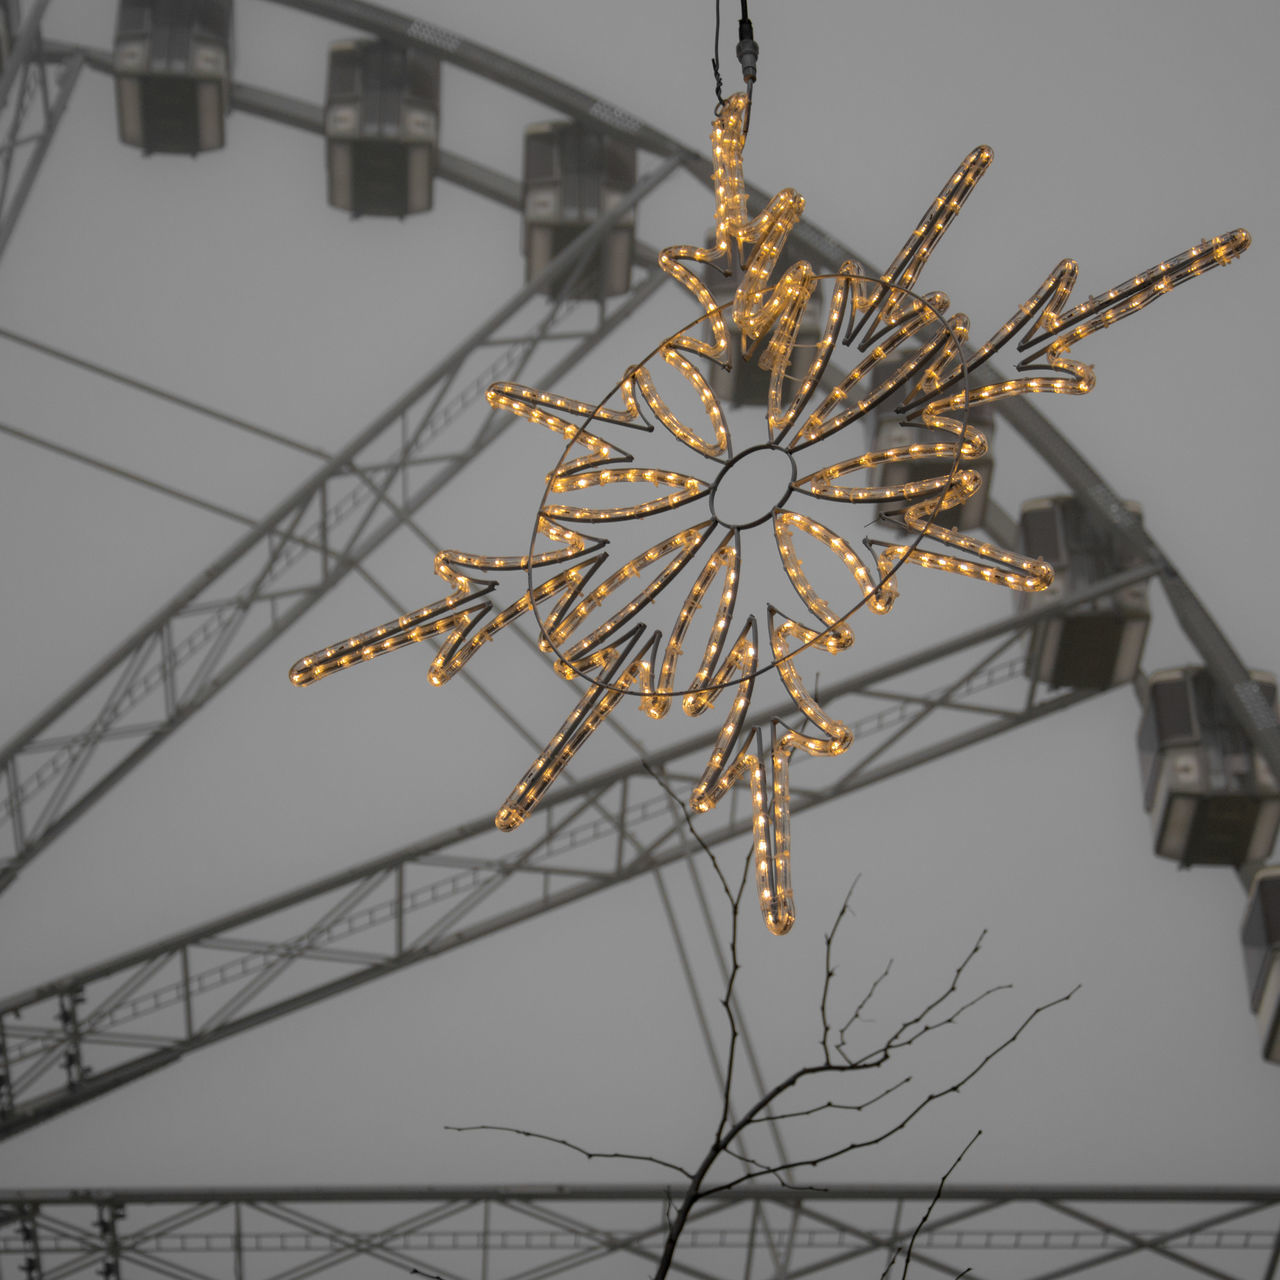 Winter Fair Architecture Christmas City City Life Cityexplorer Cityscapes Day Ferris Wheel Low Angle View No People Outdoors Sky Urban Geometry Urban Landscape Urbanphotography Wintertime Christmas Decoration Christmas Lights Premium Collection